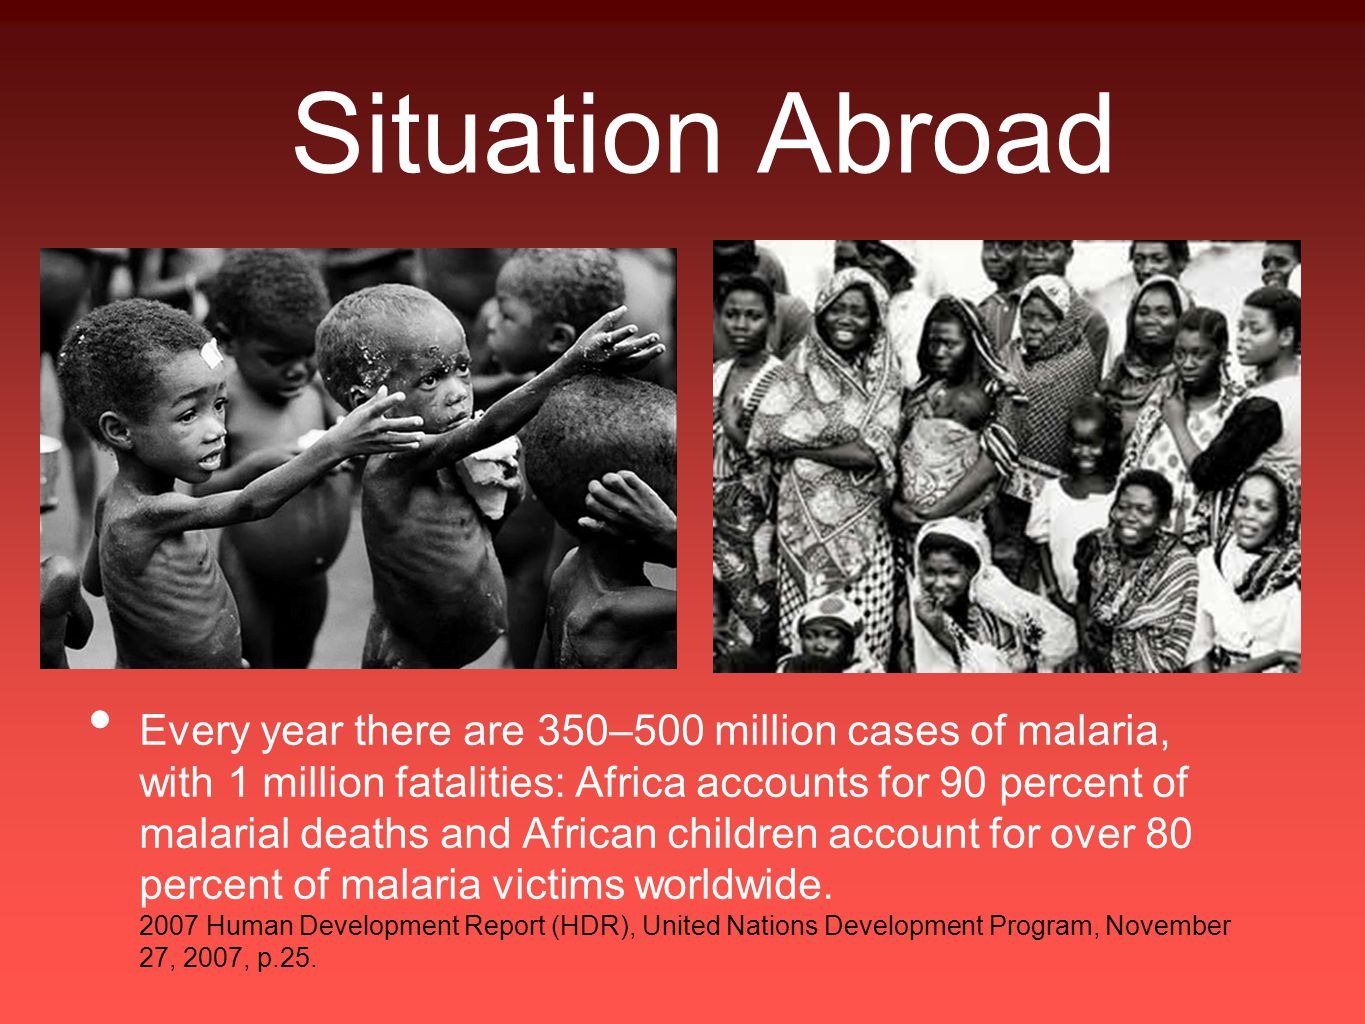 Situation Abroad 2.2 million children die each year because they are not immunized.